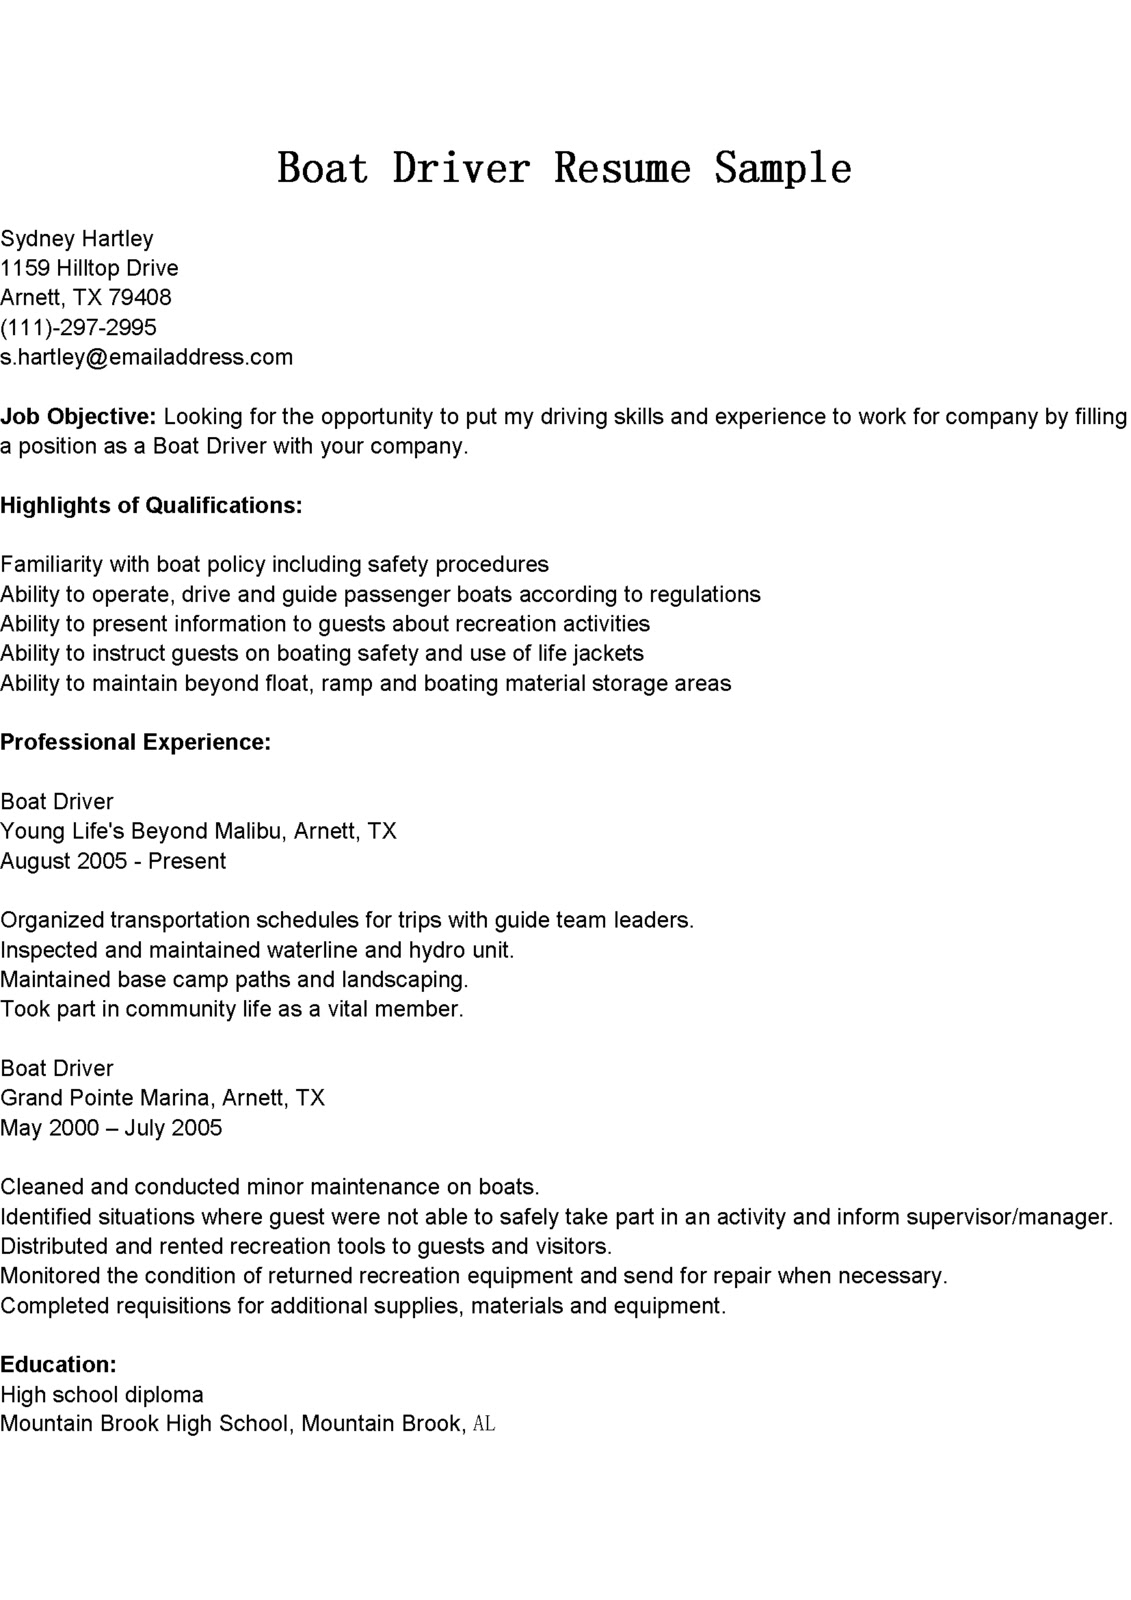 Job Description For Correctional Officer Resume